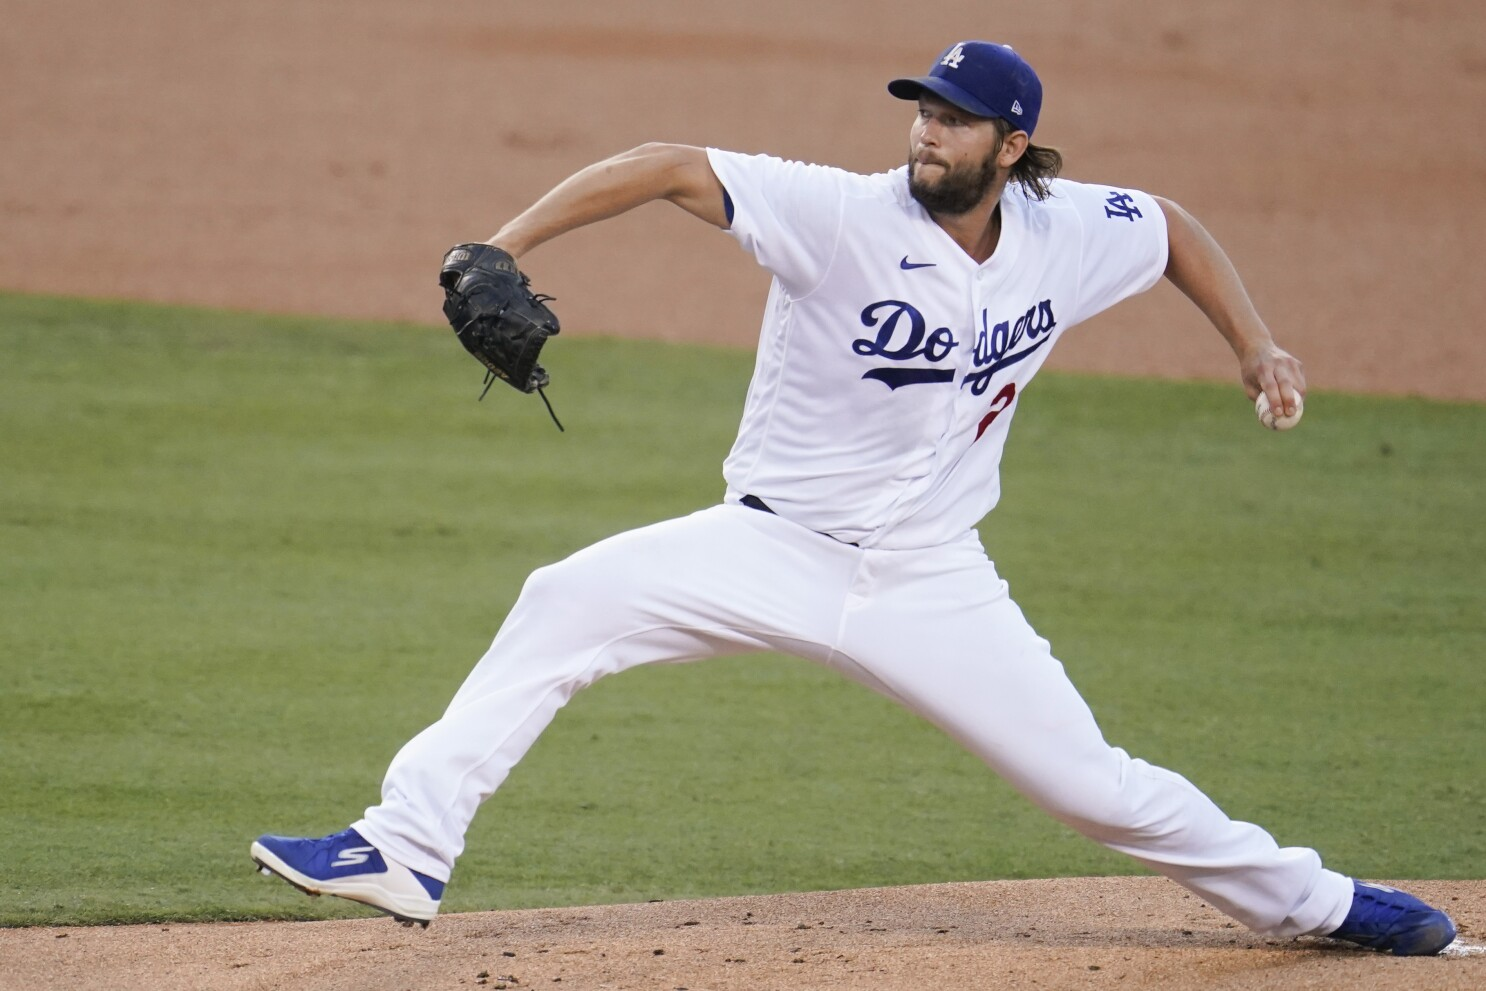 Clayton Kershaw ready to pitch in Game 2 against Brewers - Los Angeles Times